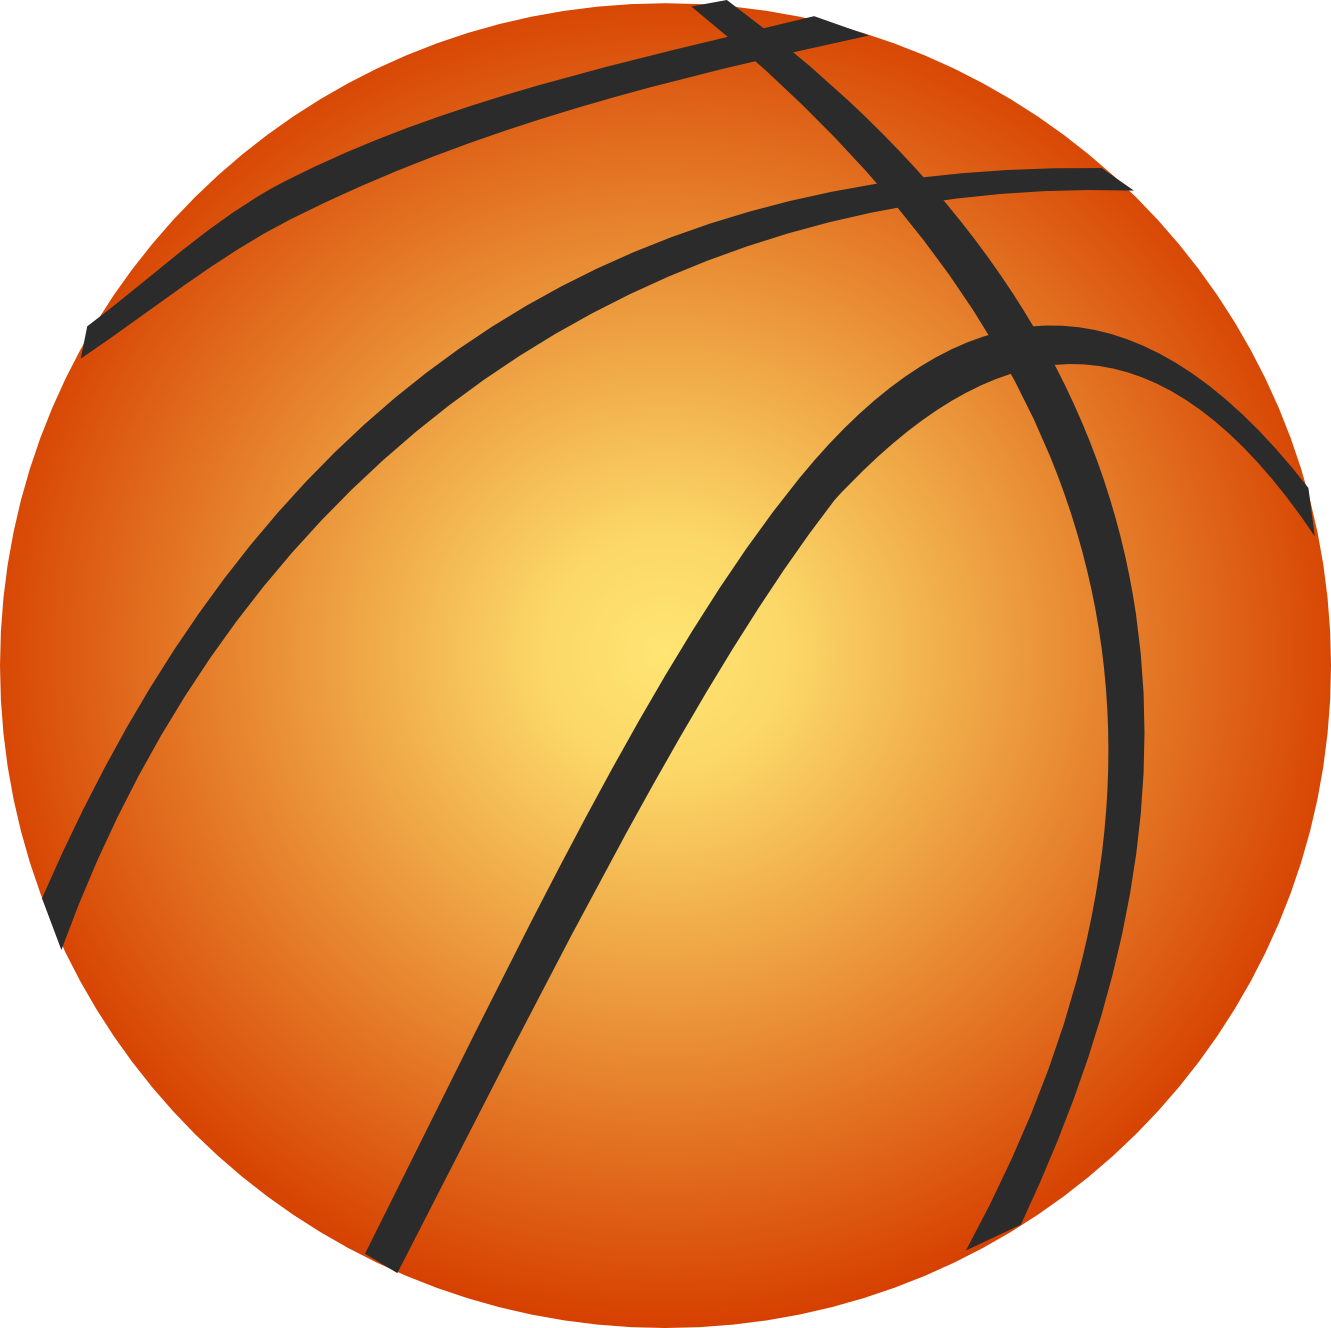 Net clipart basket ball. Clipartist clip art basketball